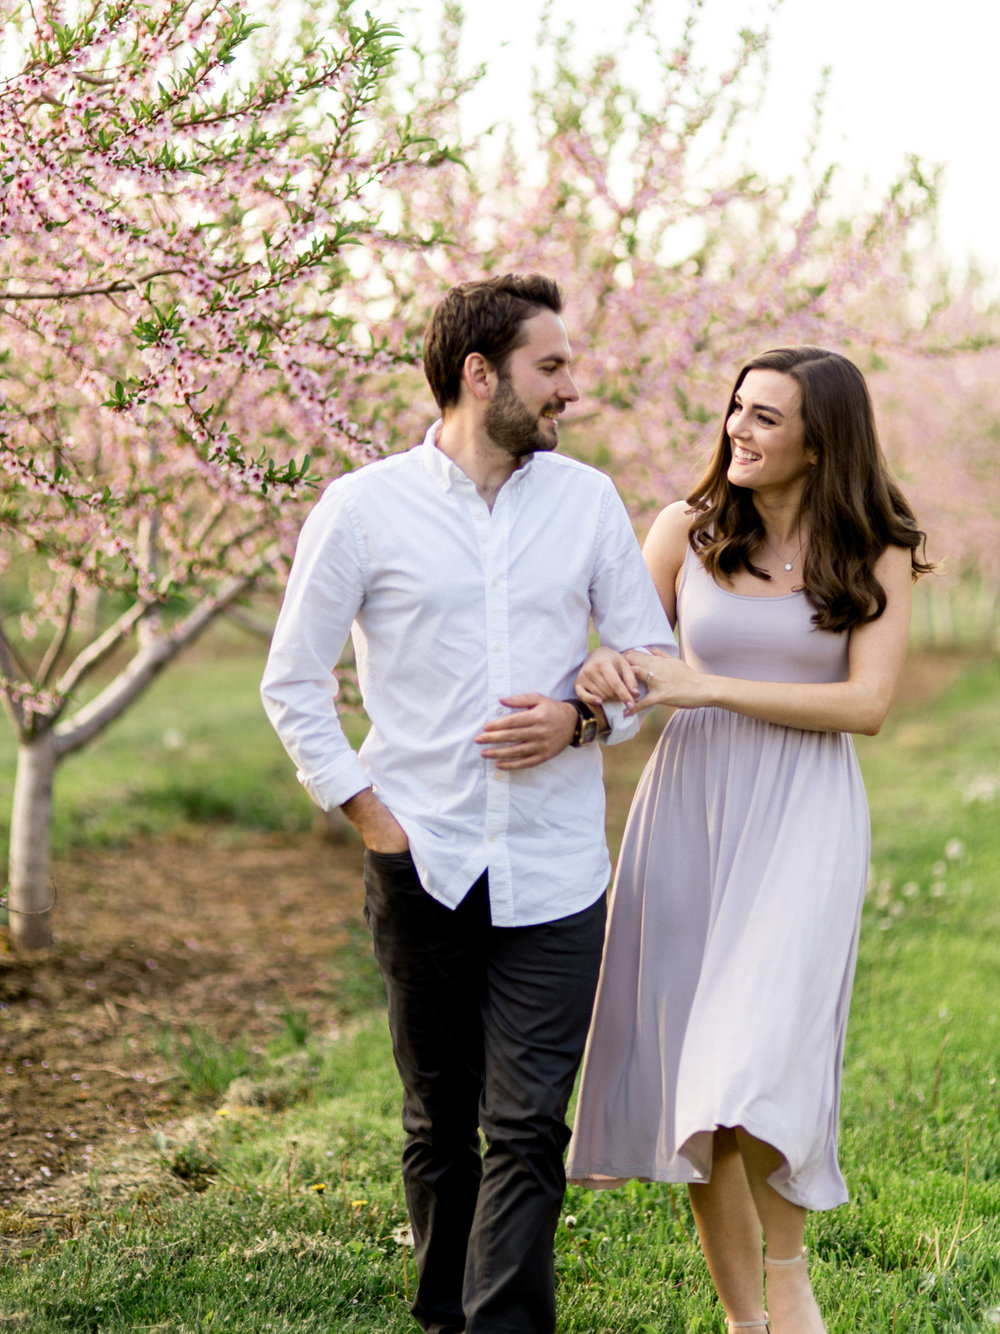 Chris & Heather's Engagement Session in Vineland Ontario Spring Blossoms Trees by Hush Hush Photography & Film Aidan Hennebry - 4.jpg